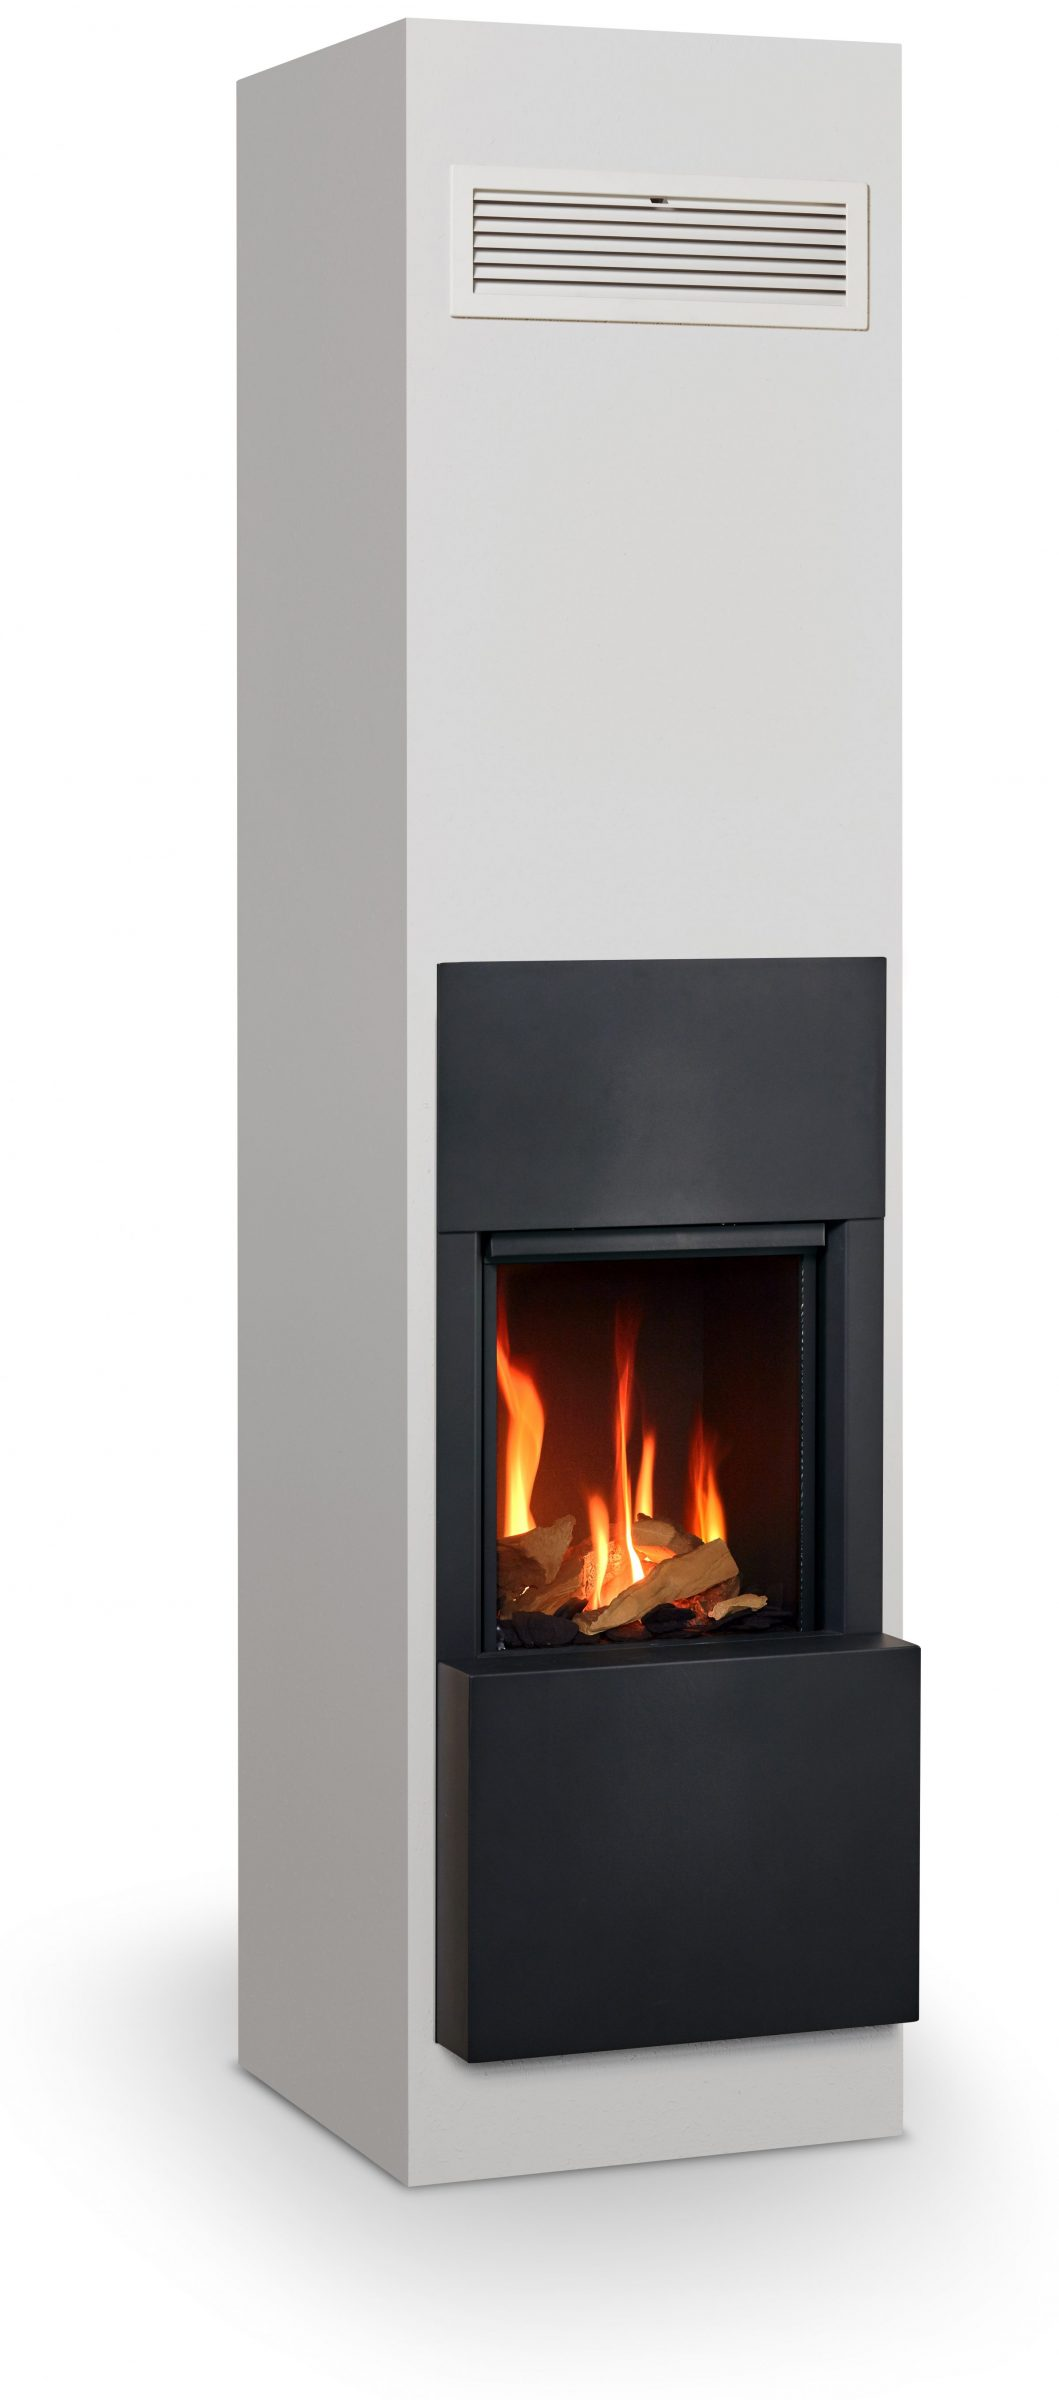 """<span class=""""entry-title-primary"""">KINGFIRE GAS</span> <span class=""""entry-subtitle"""">Plynový krb pod komínom</span>"""